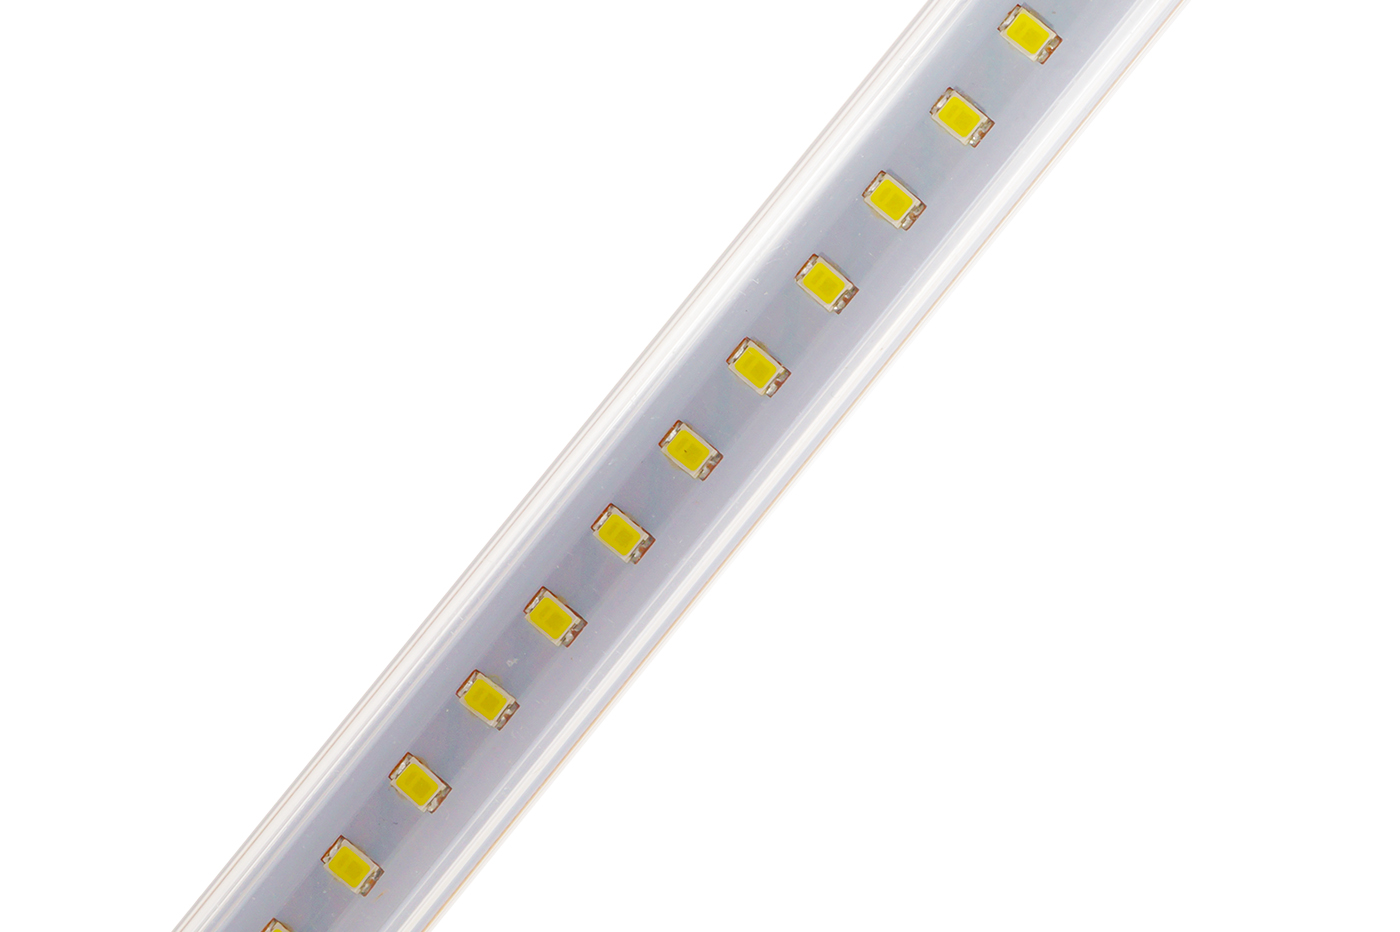 BES-18660 - Plafoniere - beselettronica - KIT BARRA RIGIDA LED SMD ...